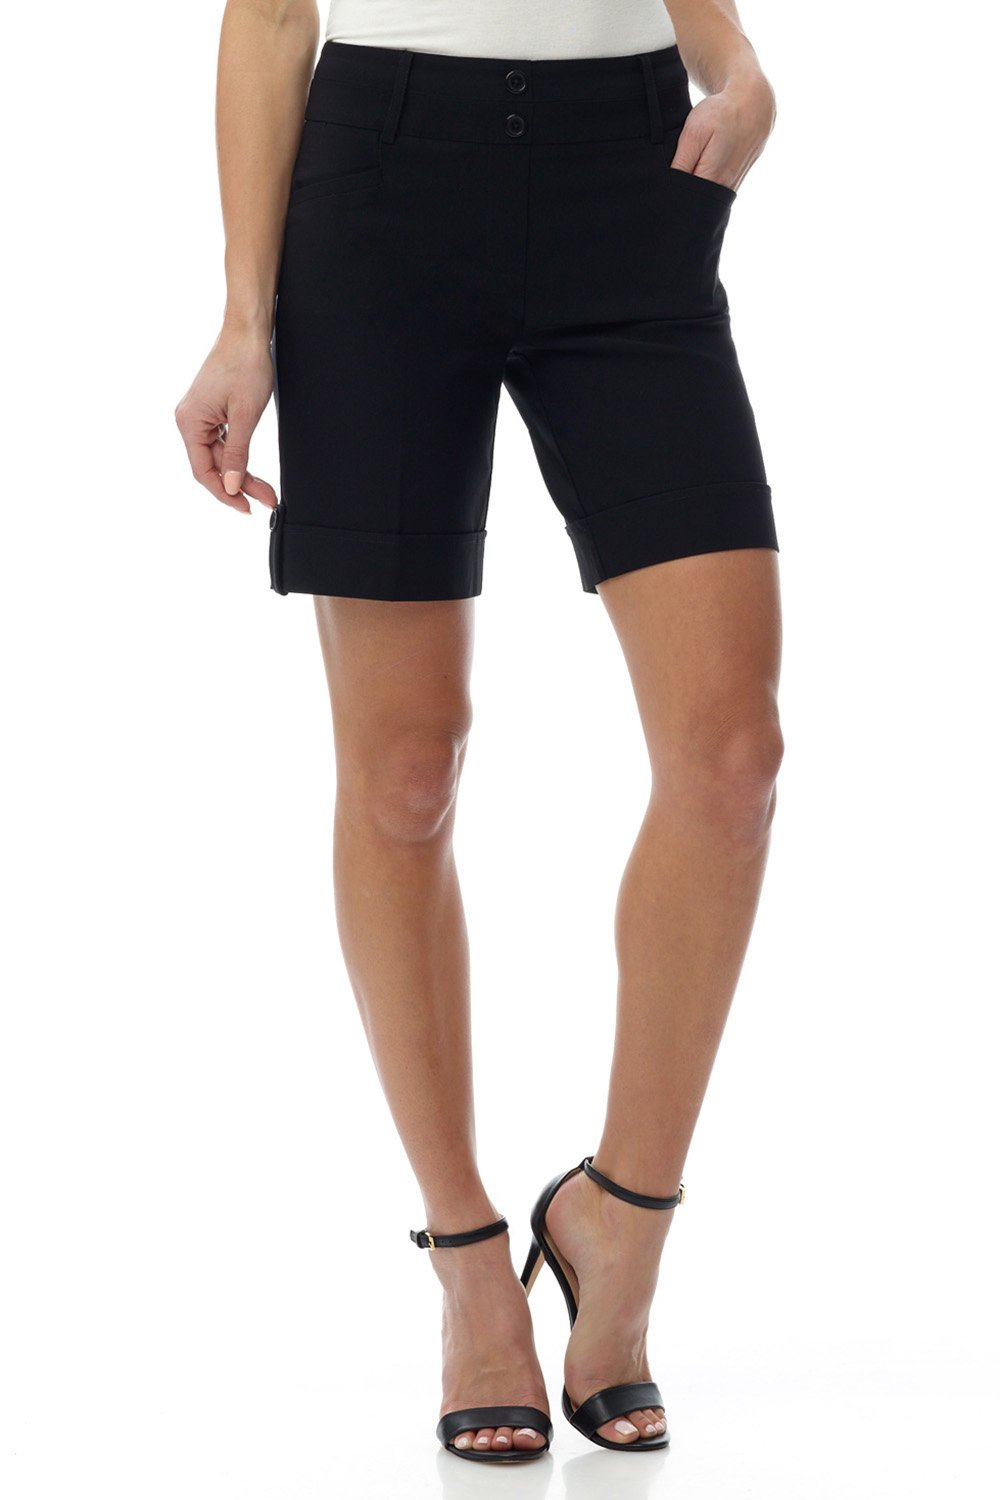 Rekucci Women's Ease in to Comfort Fit 10'' Chic Urban Short (6,Black)